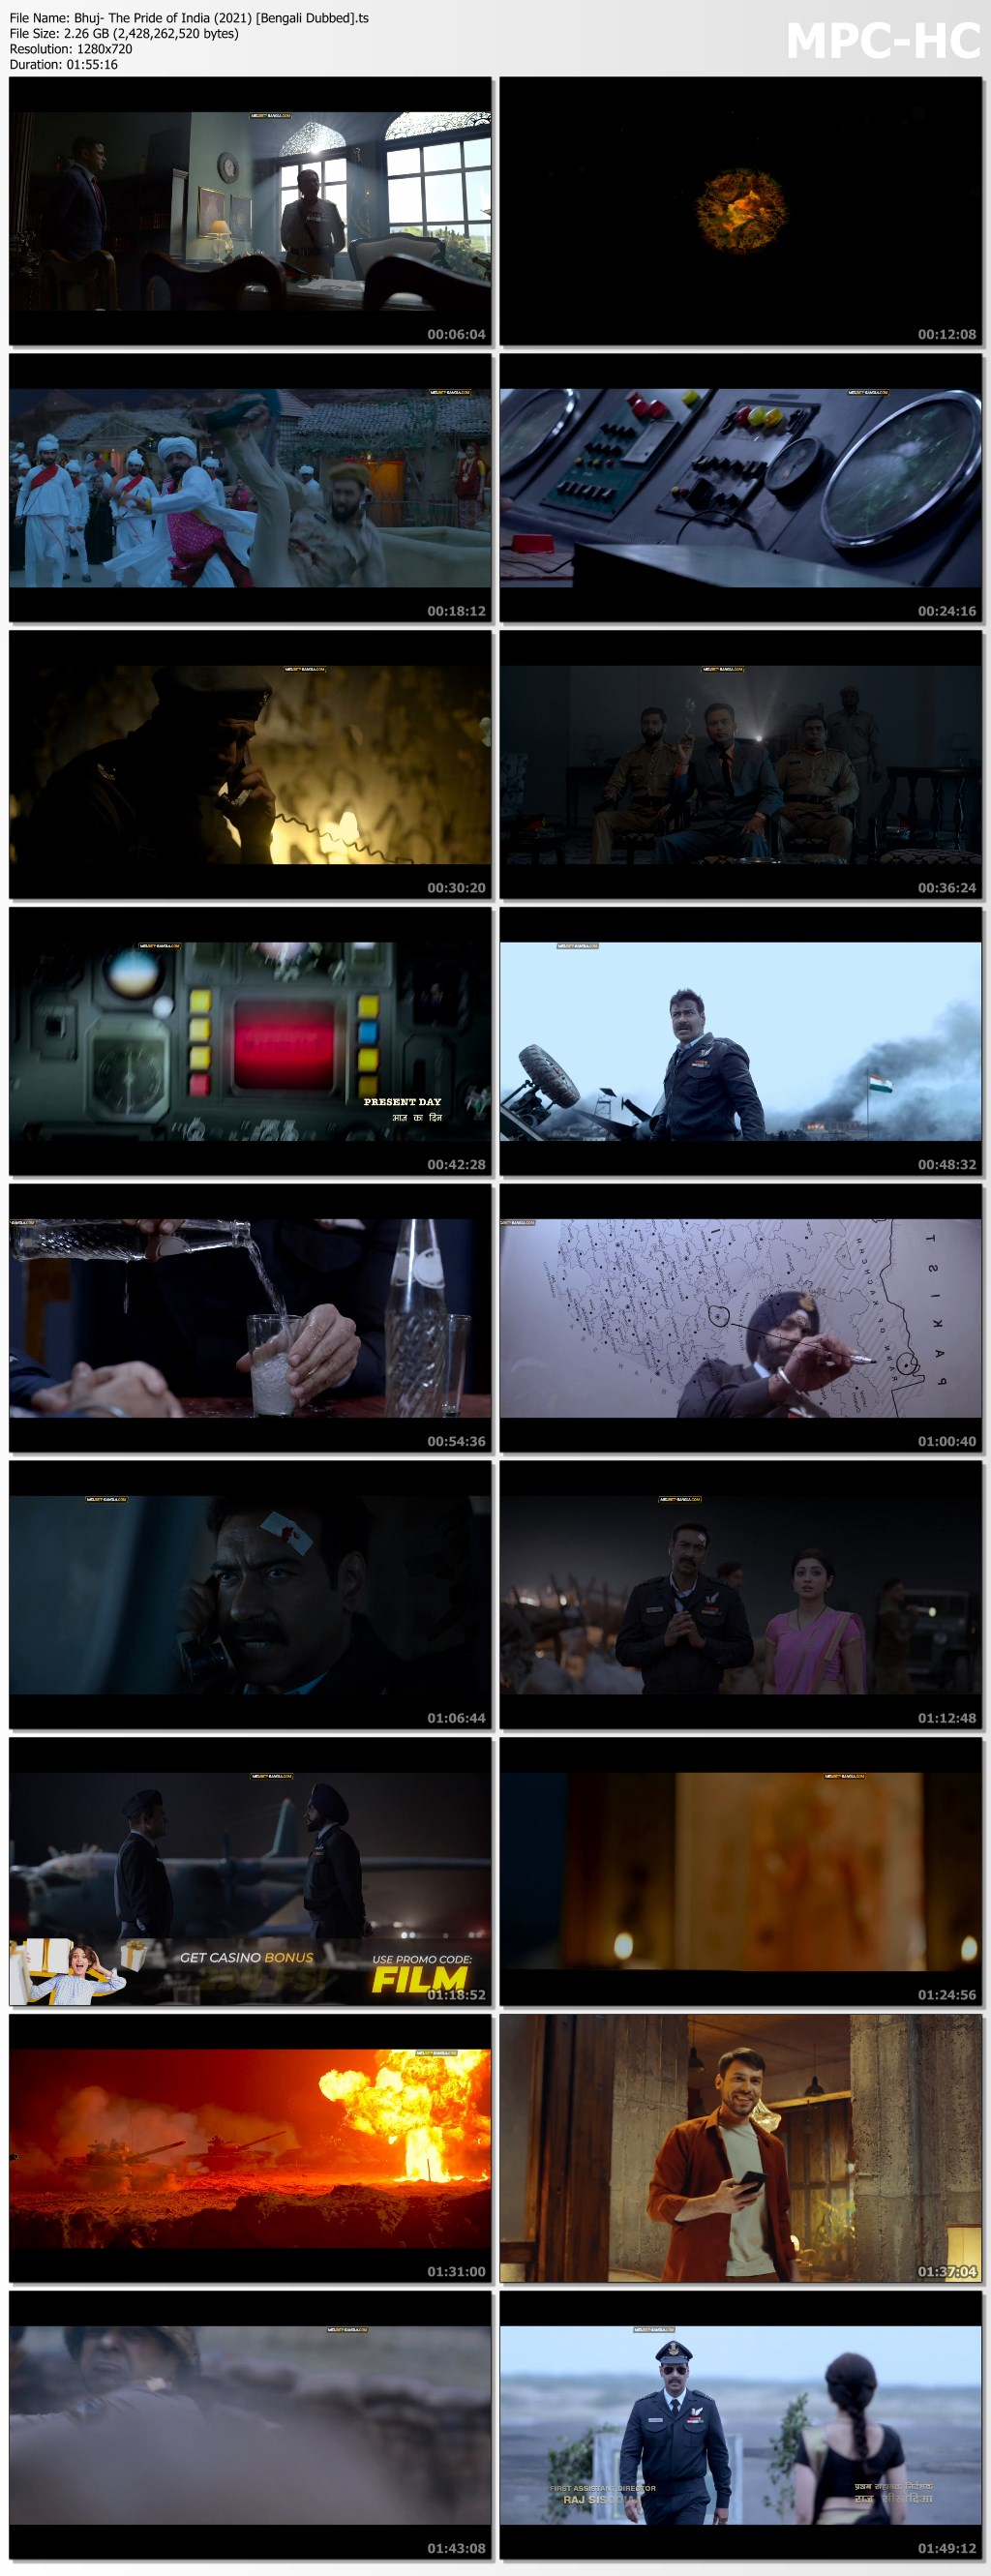 Bhuj The Pride of India (2021) [Bengali Dubbed].ts thumbs